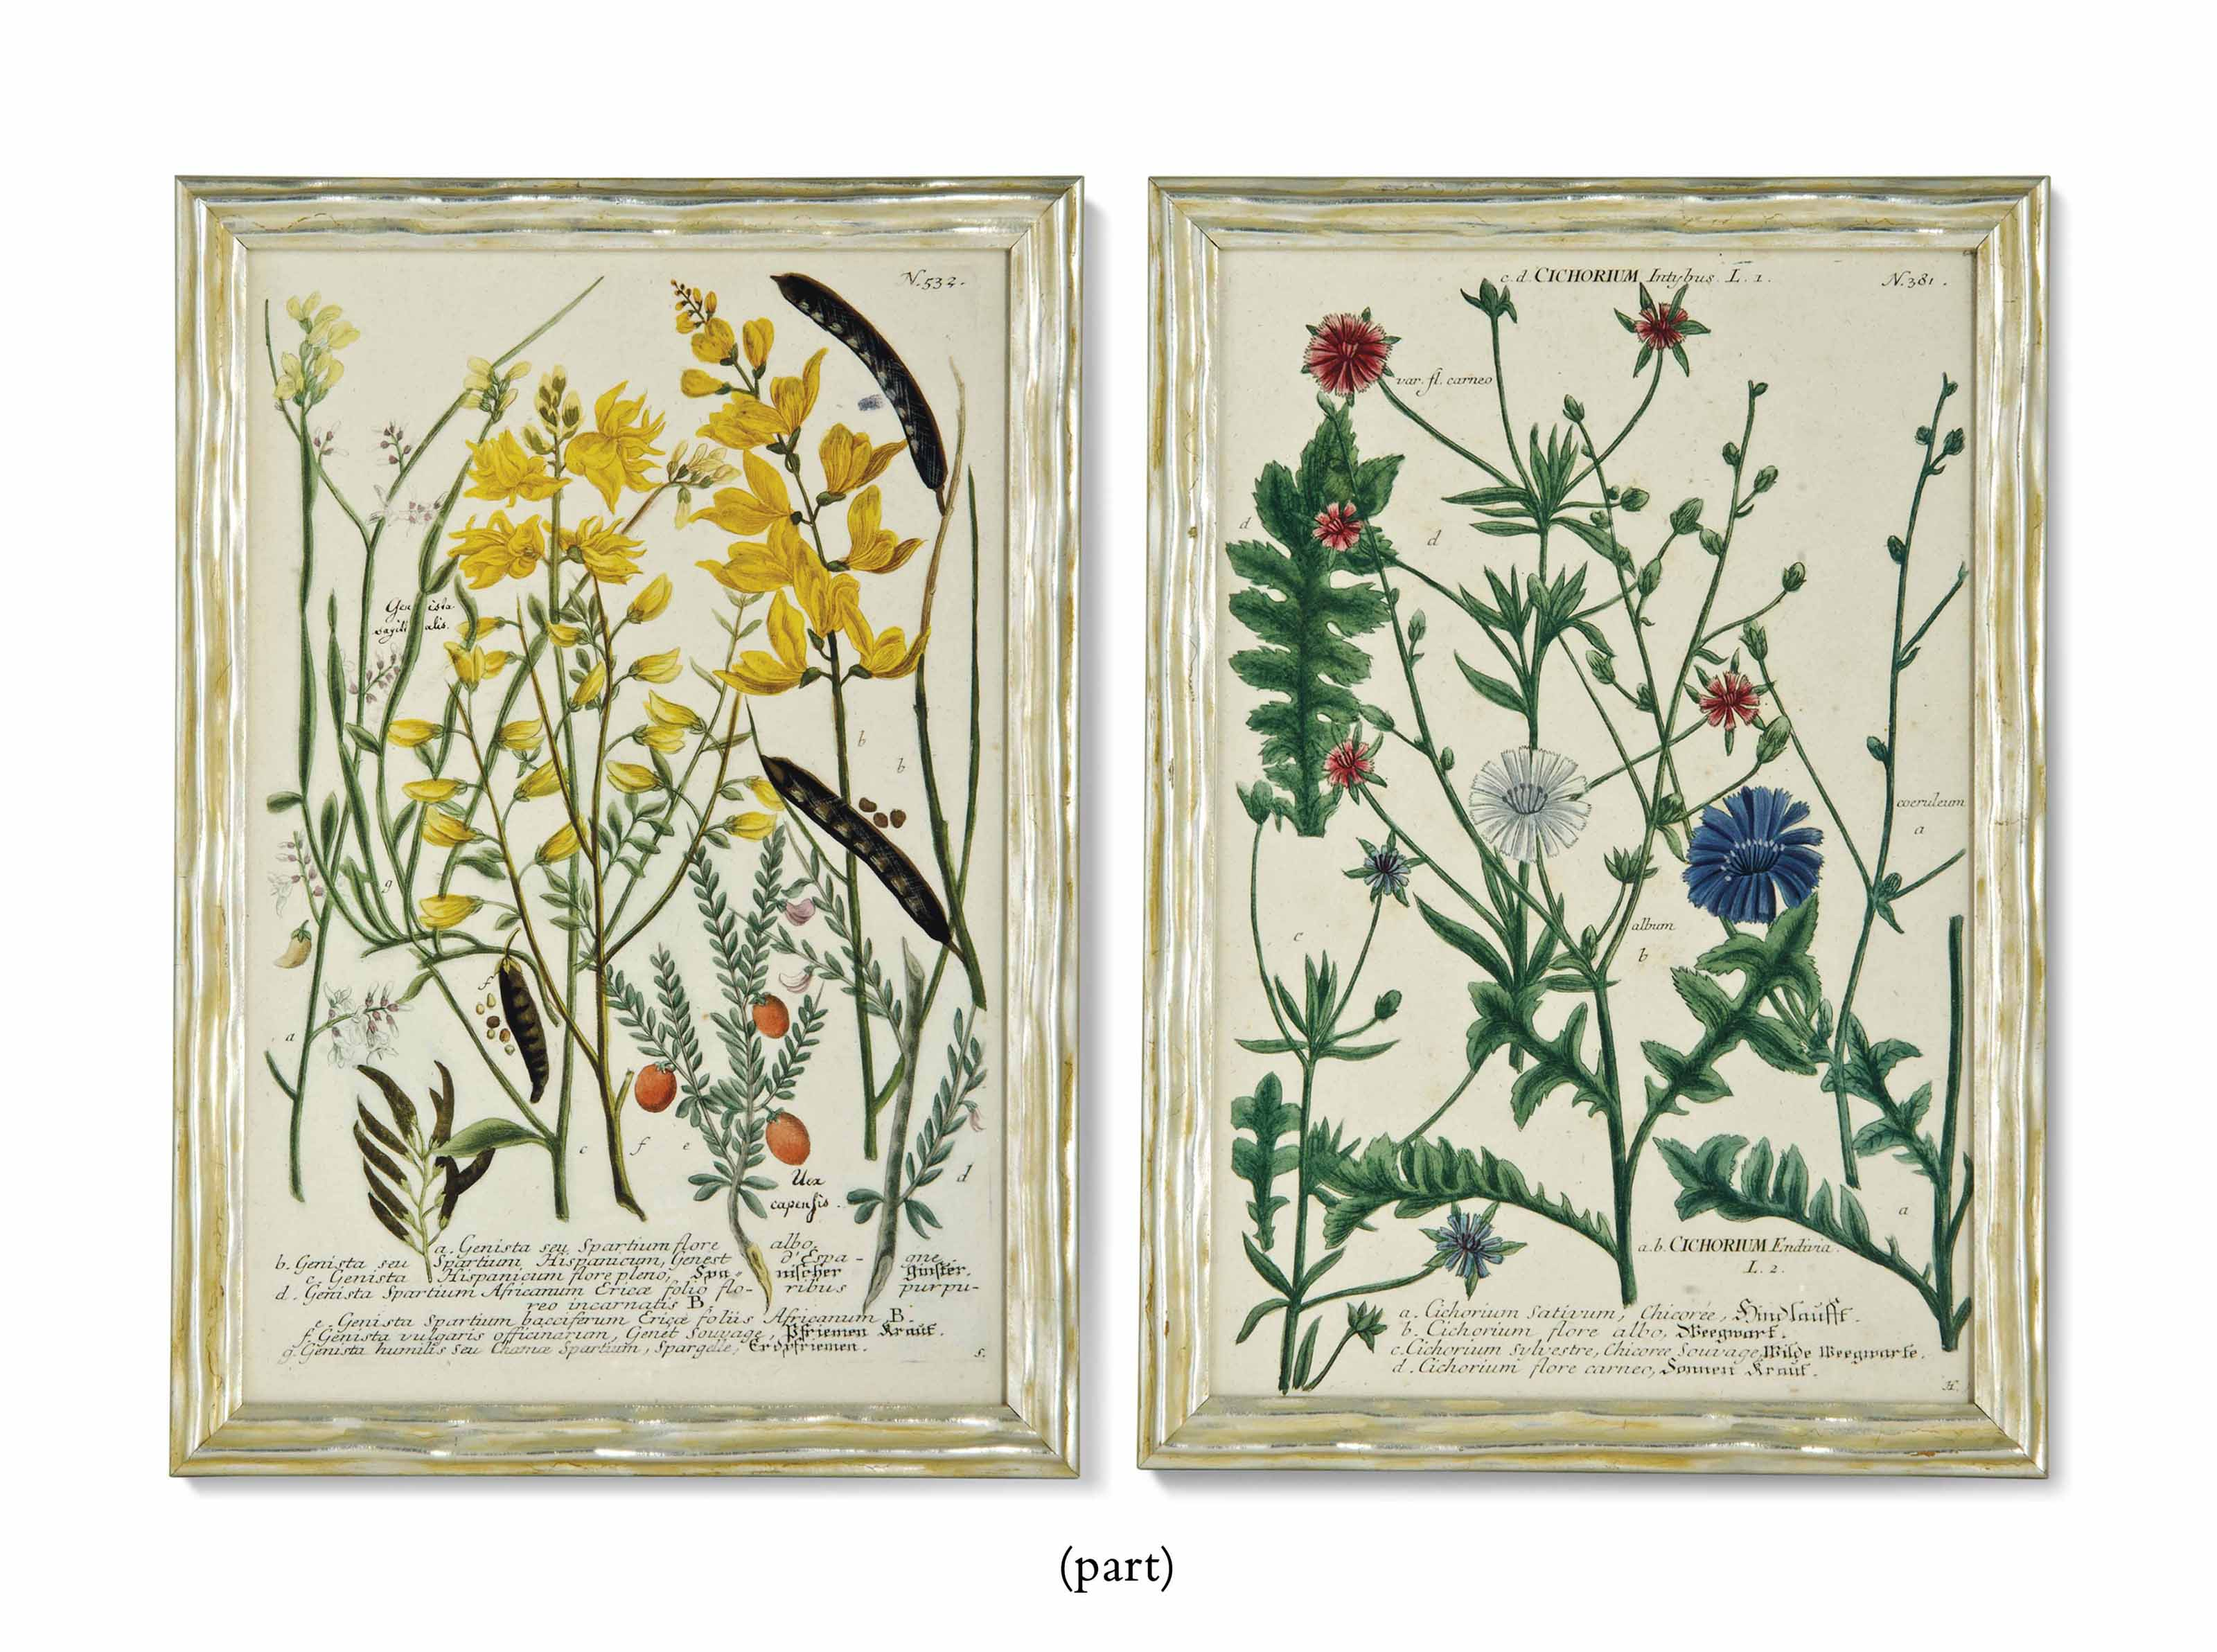 SIXTEEN HAND-COLOURED BOTANICAL ENGRAVINGS FROM WEINMANN'S 'PHYTANTHOZA ICONOGRAPHIA'